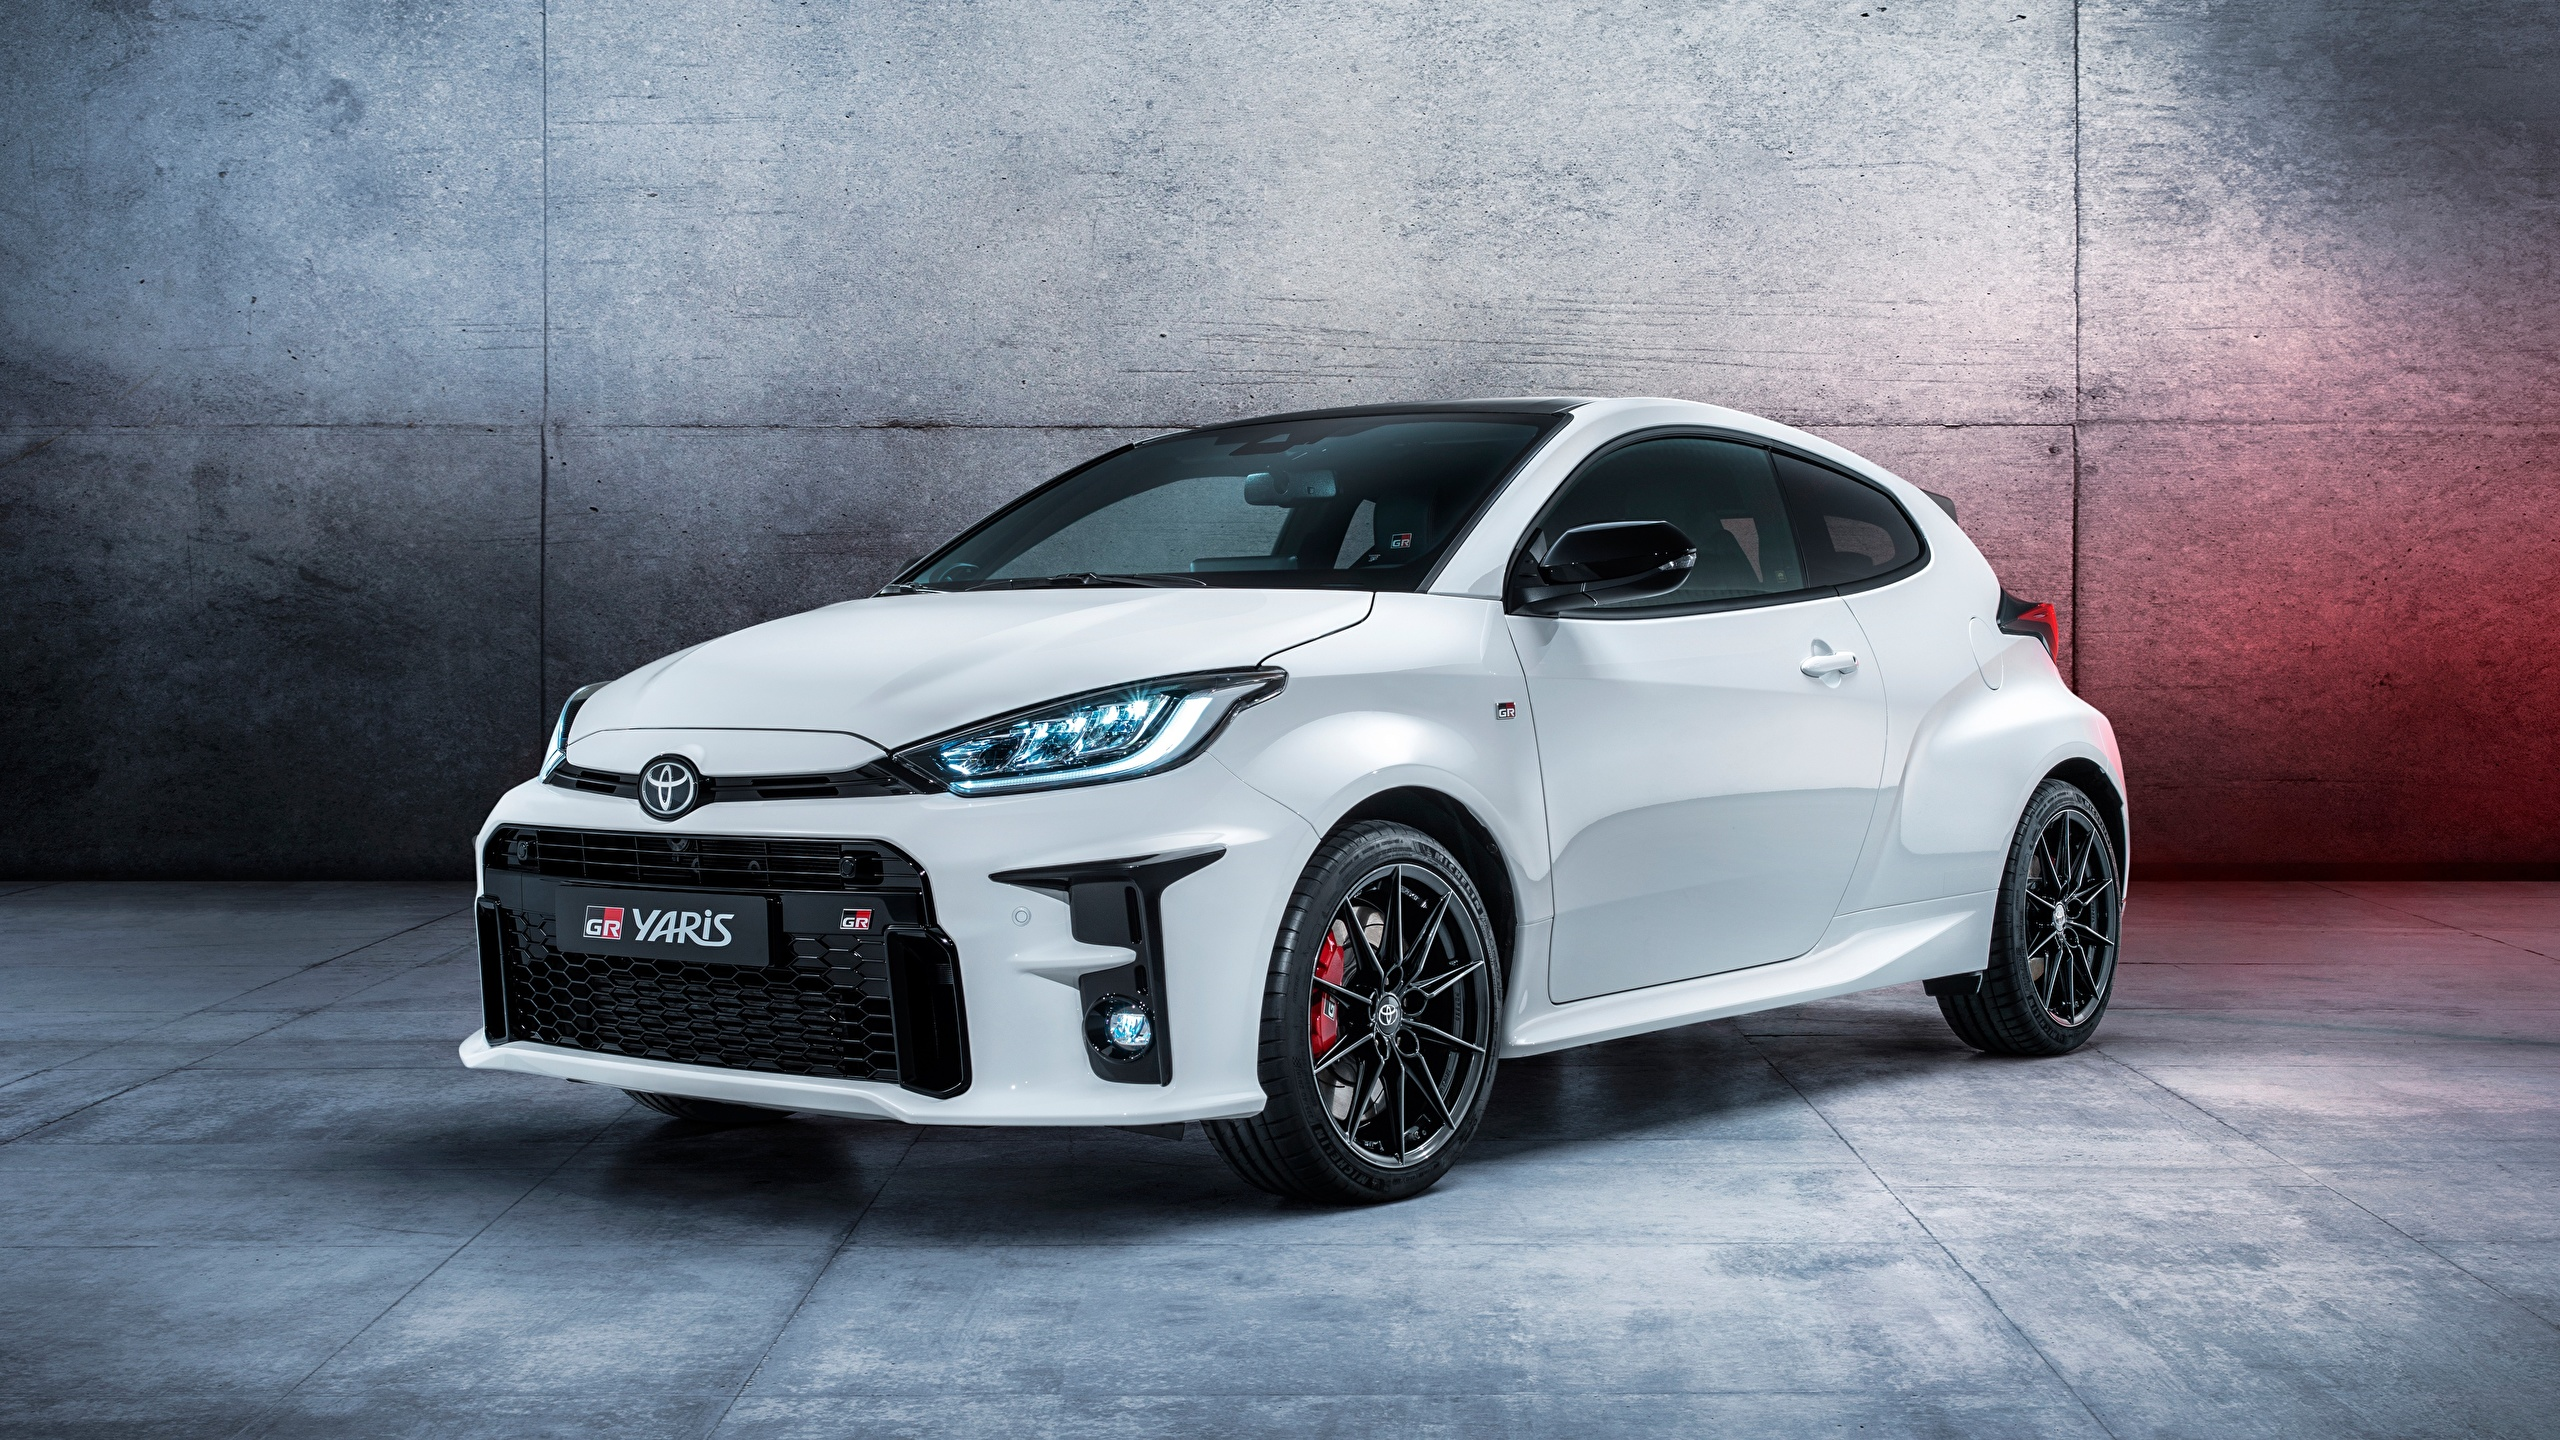 Picture Toyota hatchback, GR Yaris, 2020 White Cars 2560x1440 auto automobile